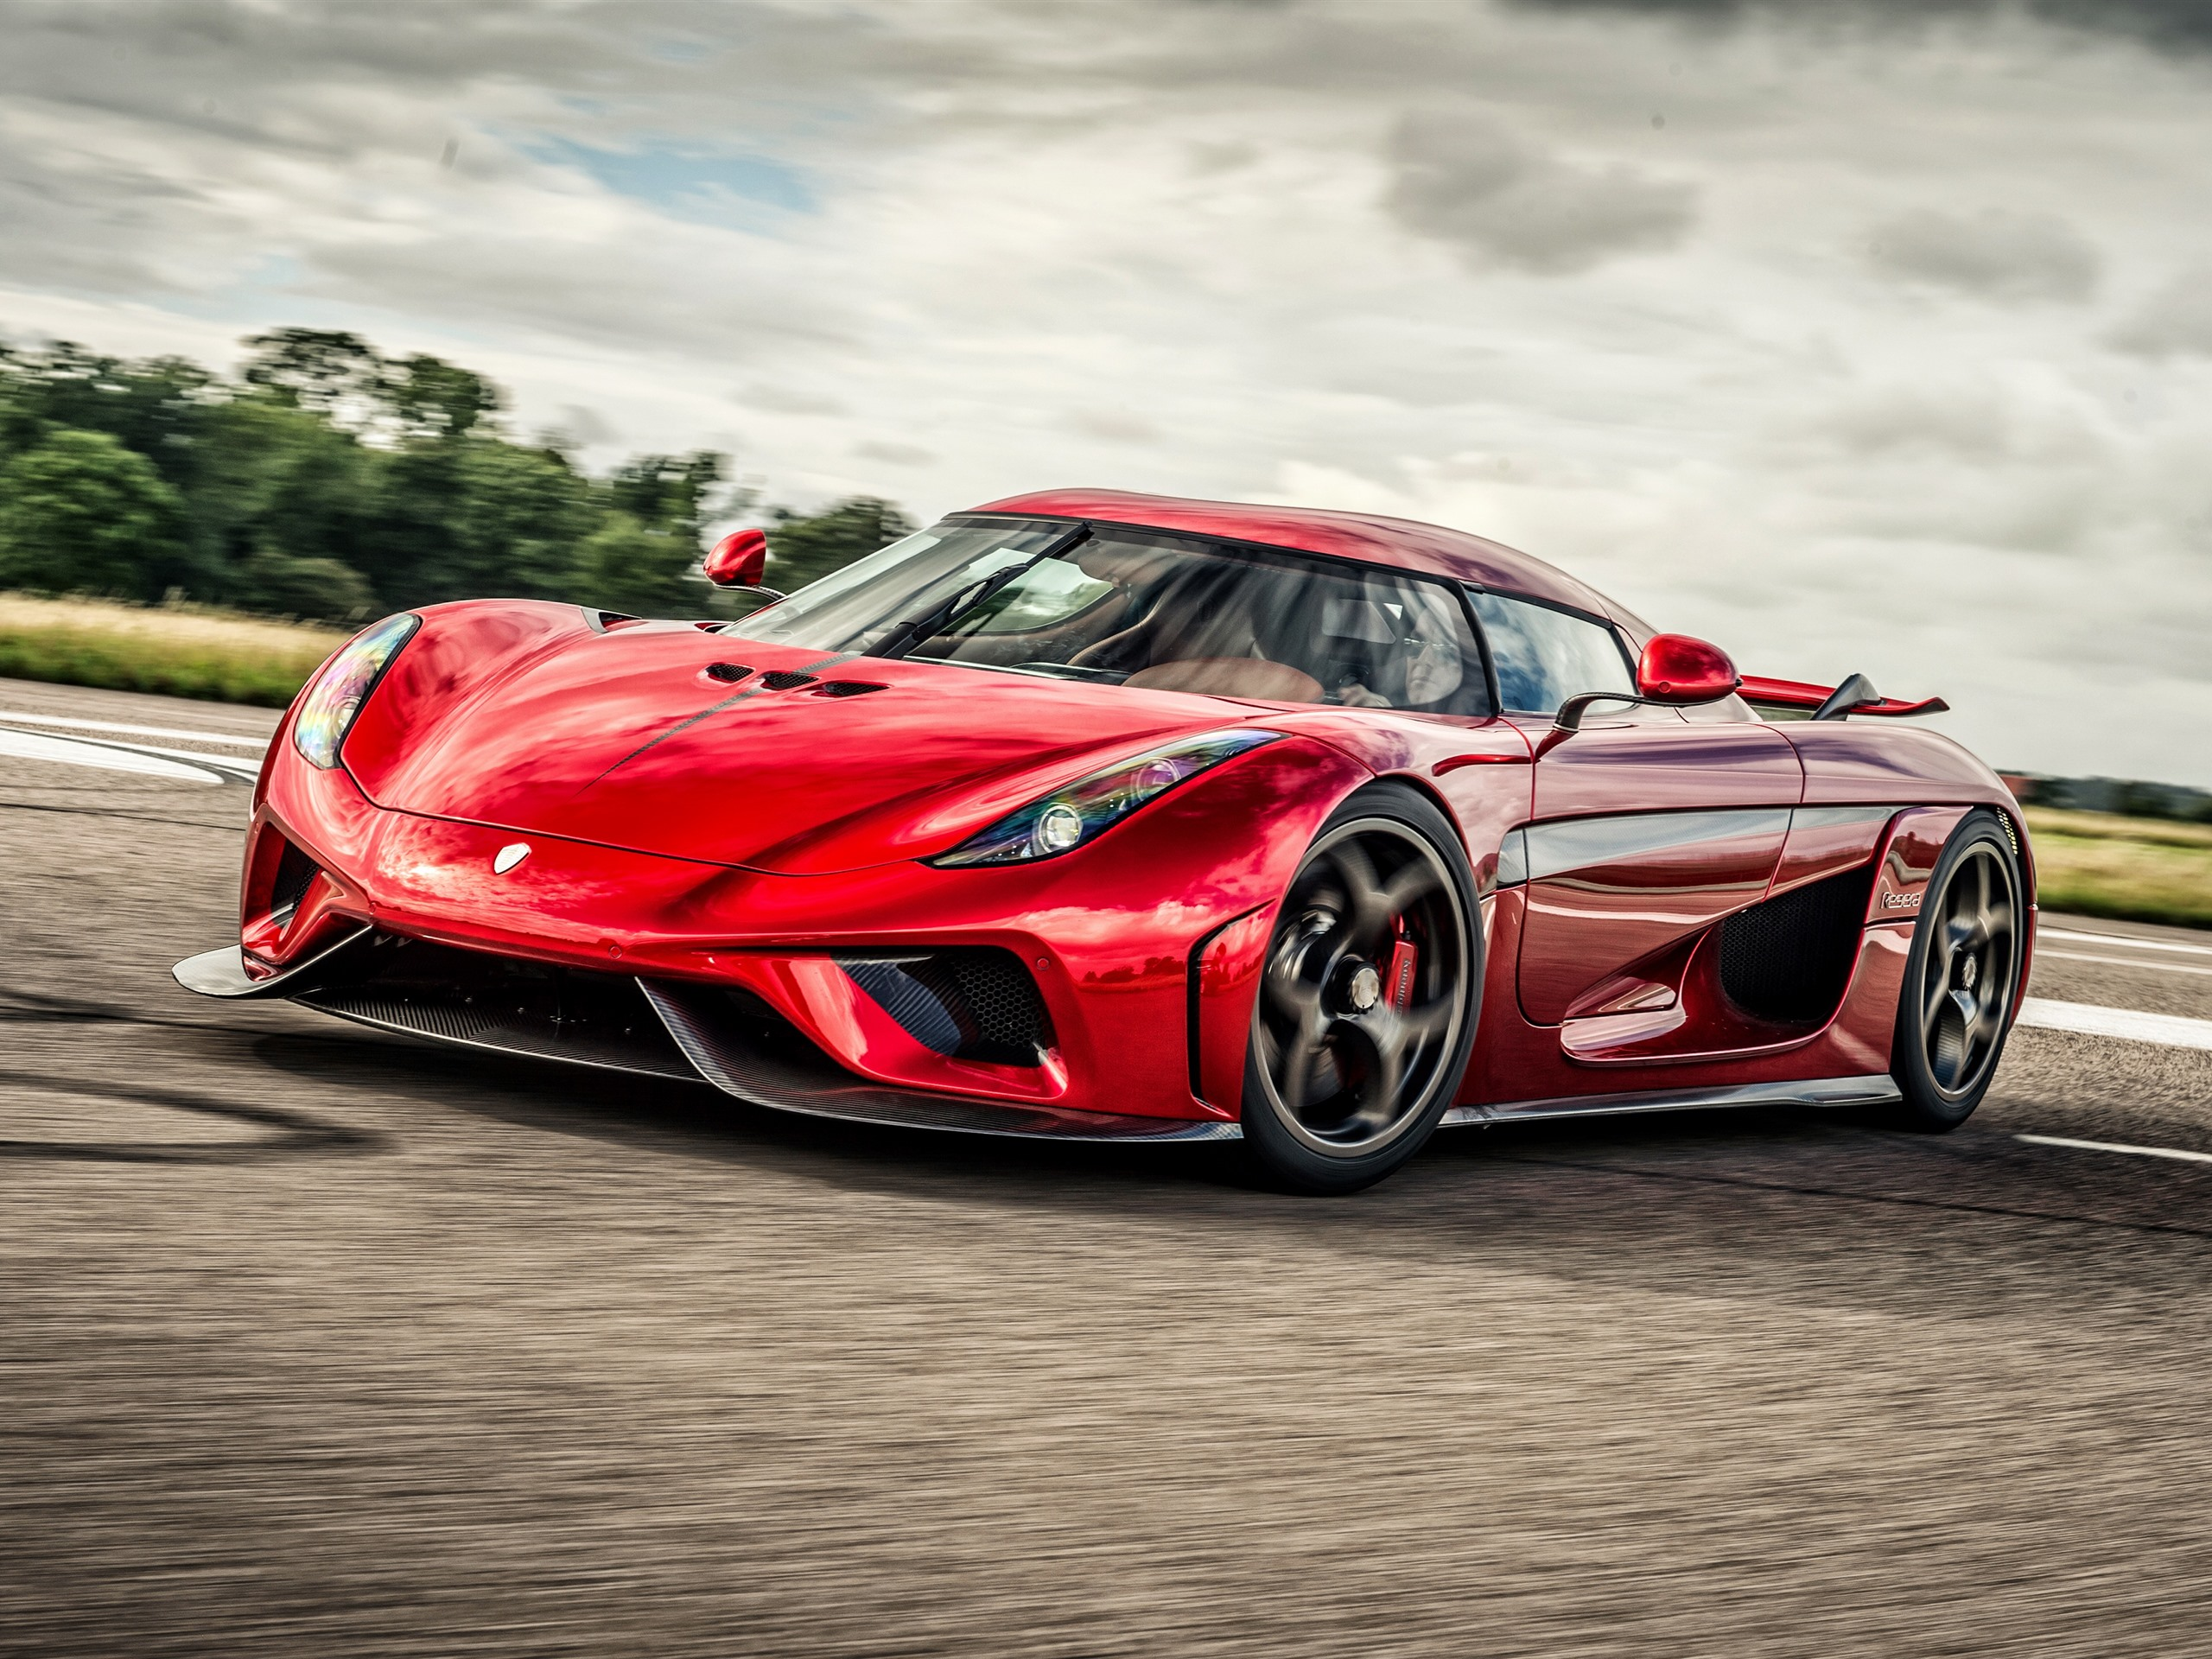 Car Wallpaper Iphone X Koenigsegg Red Supercar Front View 1242x2688 Iphone Xs Max